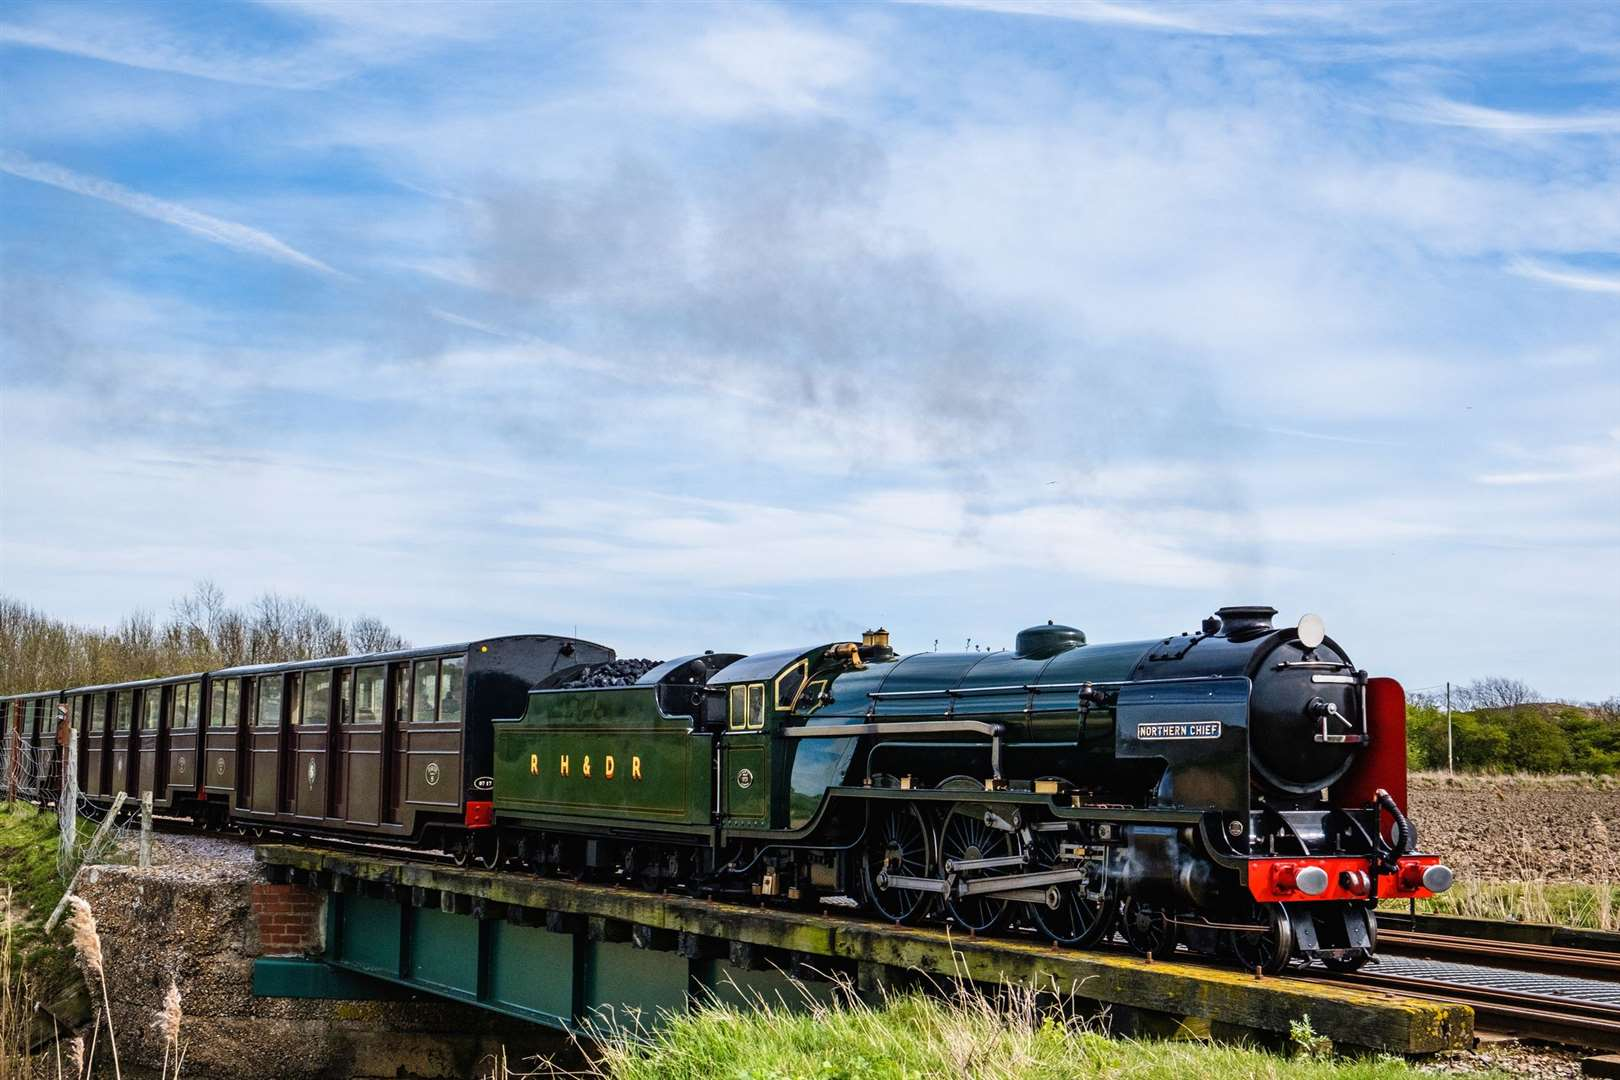 The railway has been operating for over 90 years and has a large fleet of one third size steam and diesel locomotives